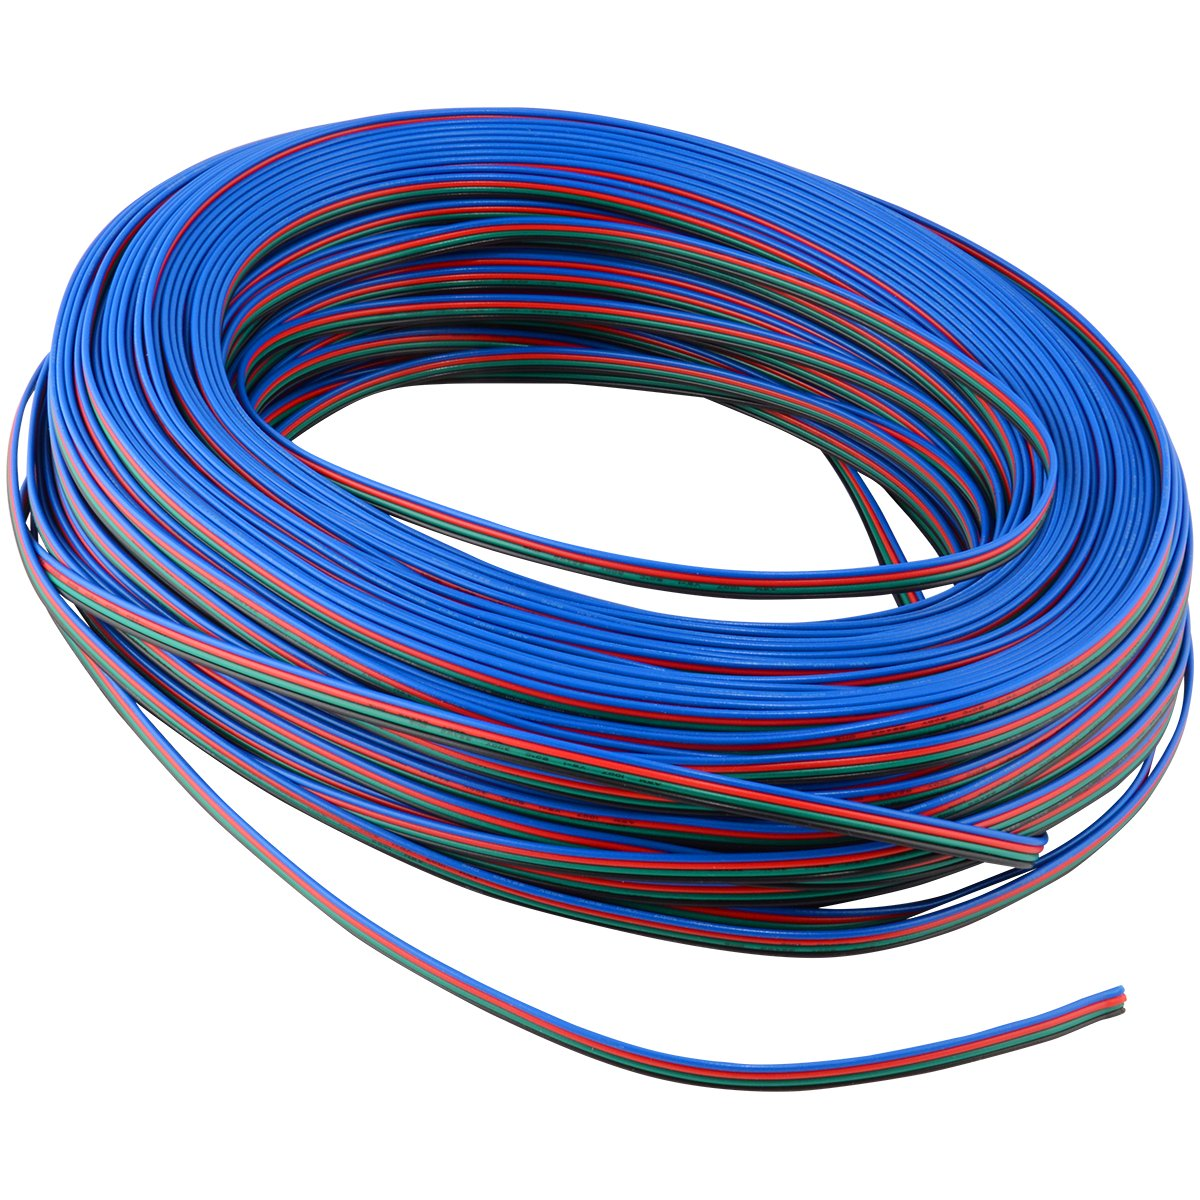 Four Conductor Wire for RGB LED Strip Light, Cut to Order (3 Feet/1 Meter)